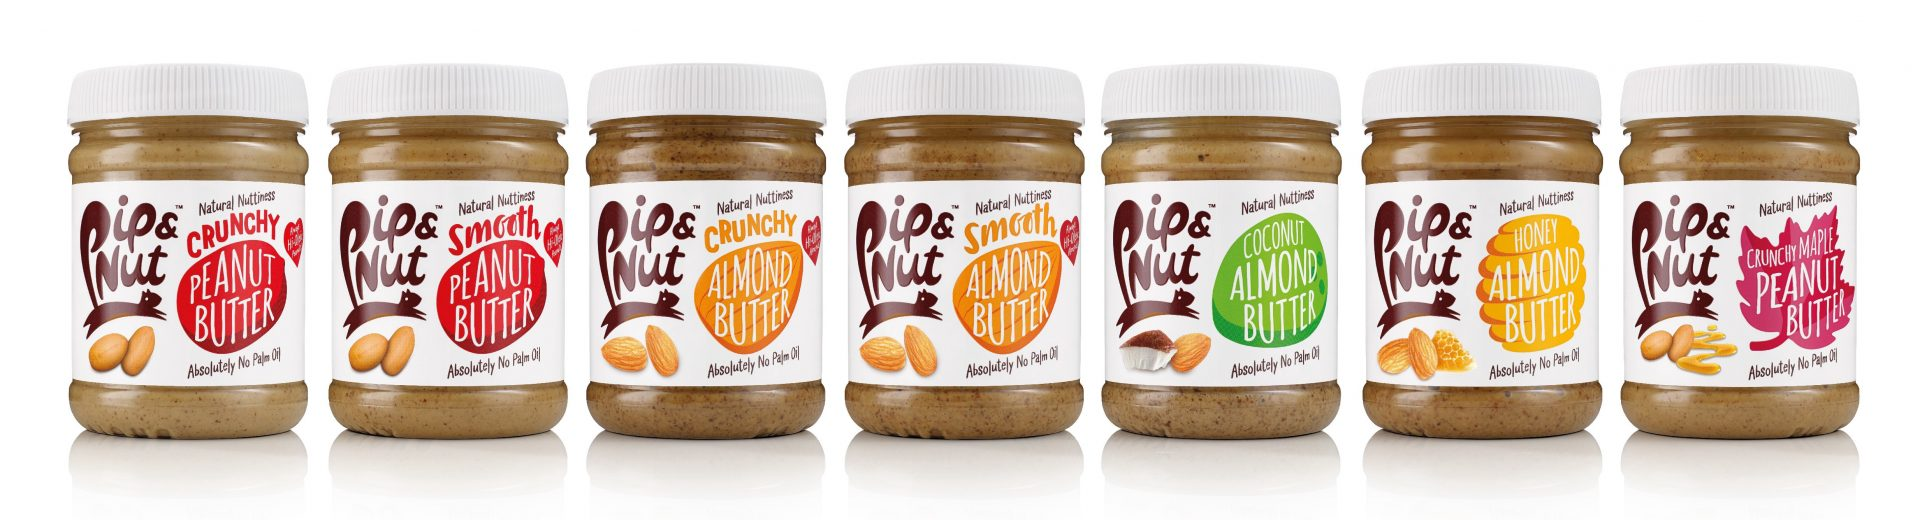 pip-and-nut-products